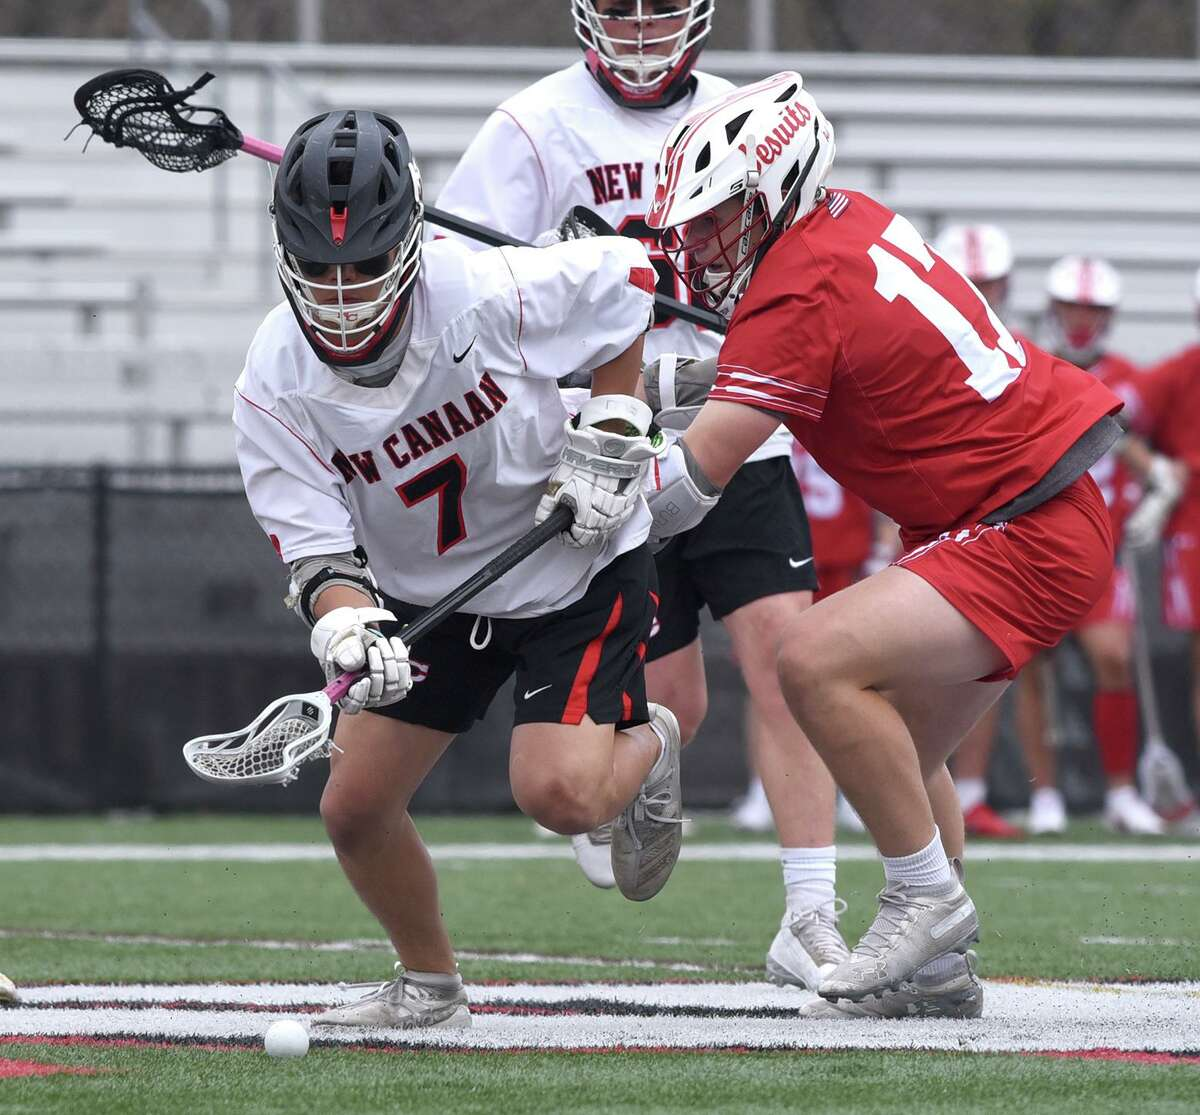 New Canaan's Hayden Shin (7) and Fairfield Prep's Ted Bednar (17) scramble for the ball on a faceoff during a boys lacrosse game at Dunning Field on Monday, April 19, 2021.